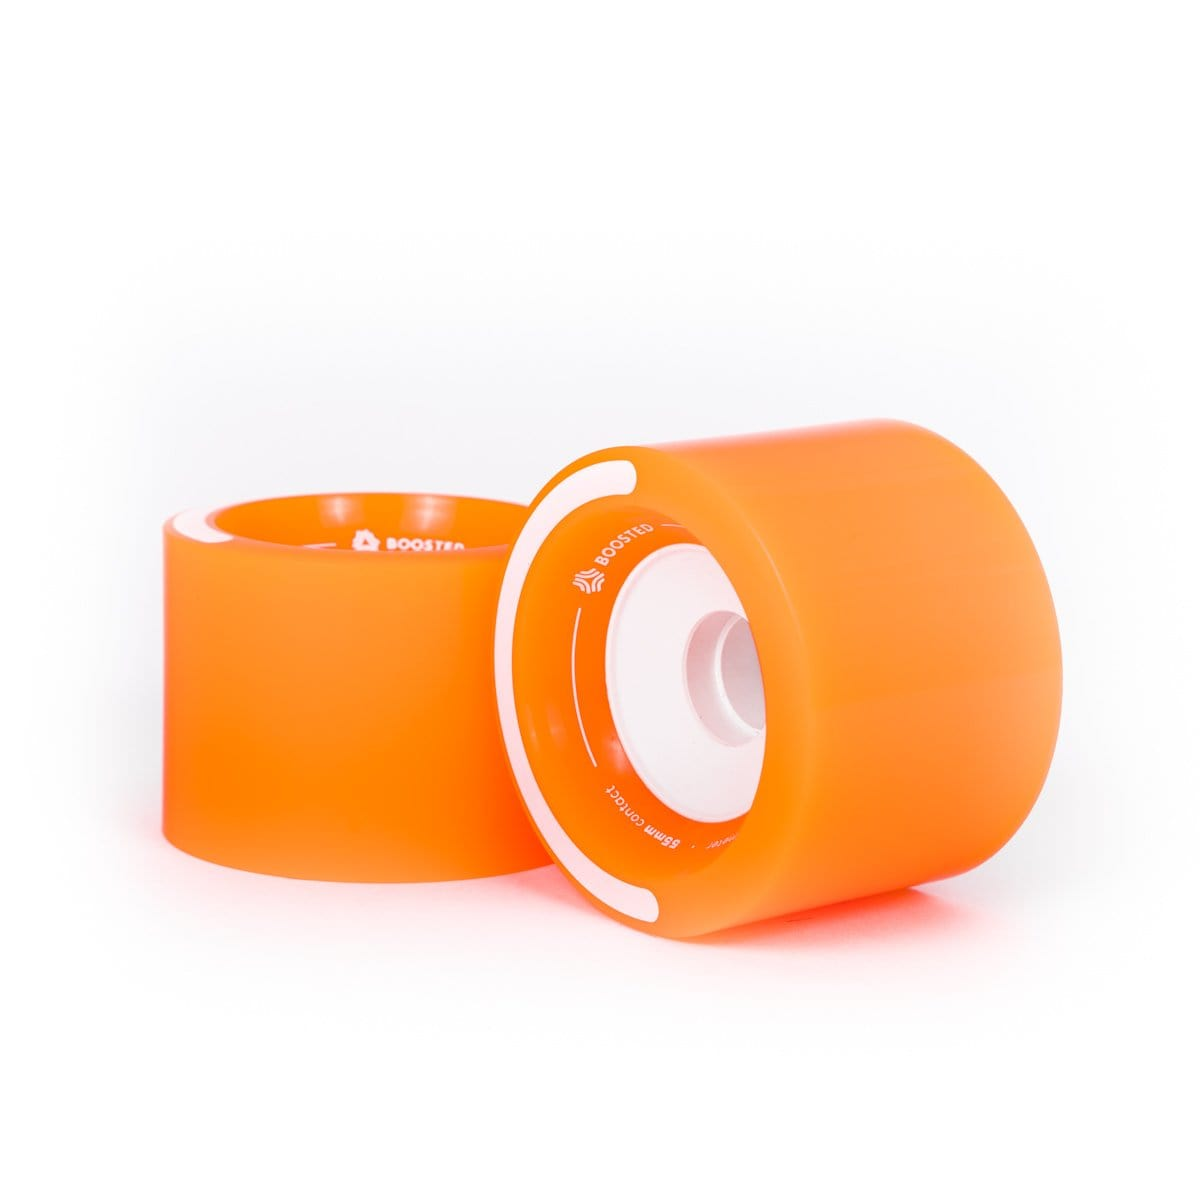 Boosted Lunar Wheels - 80mm - Orange